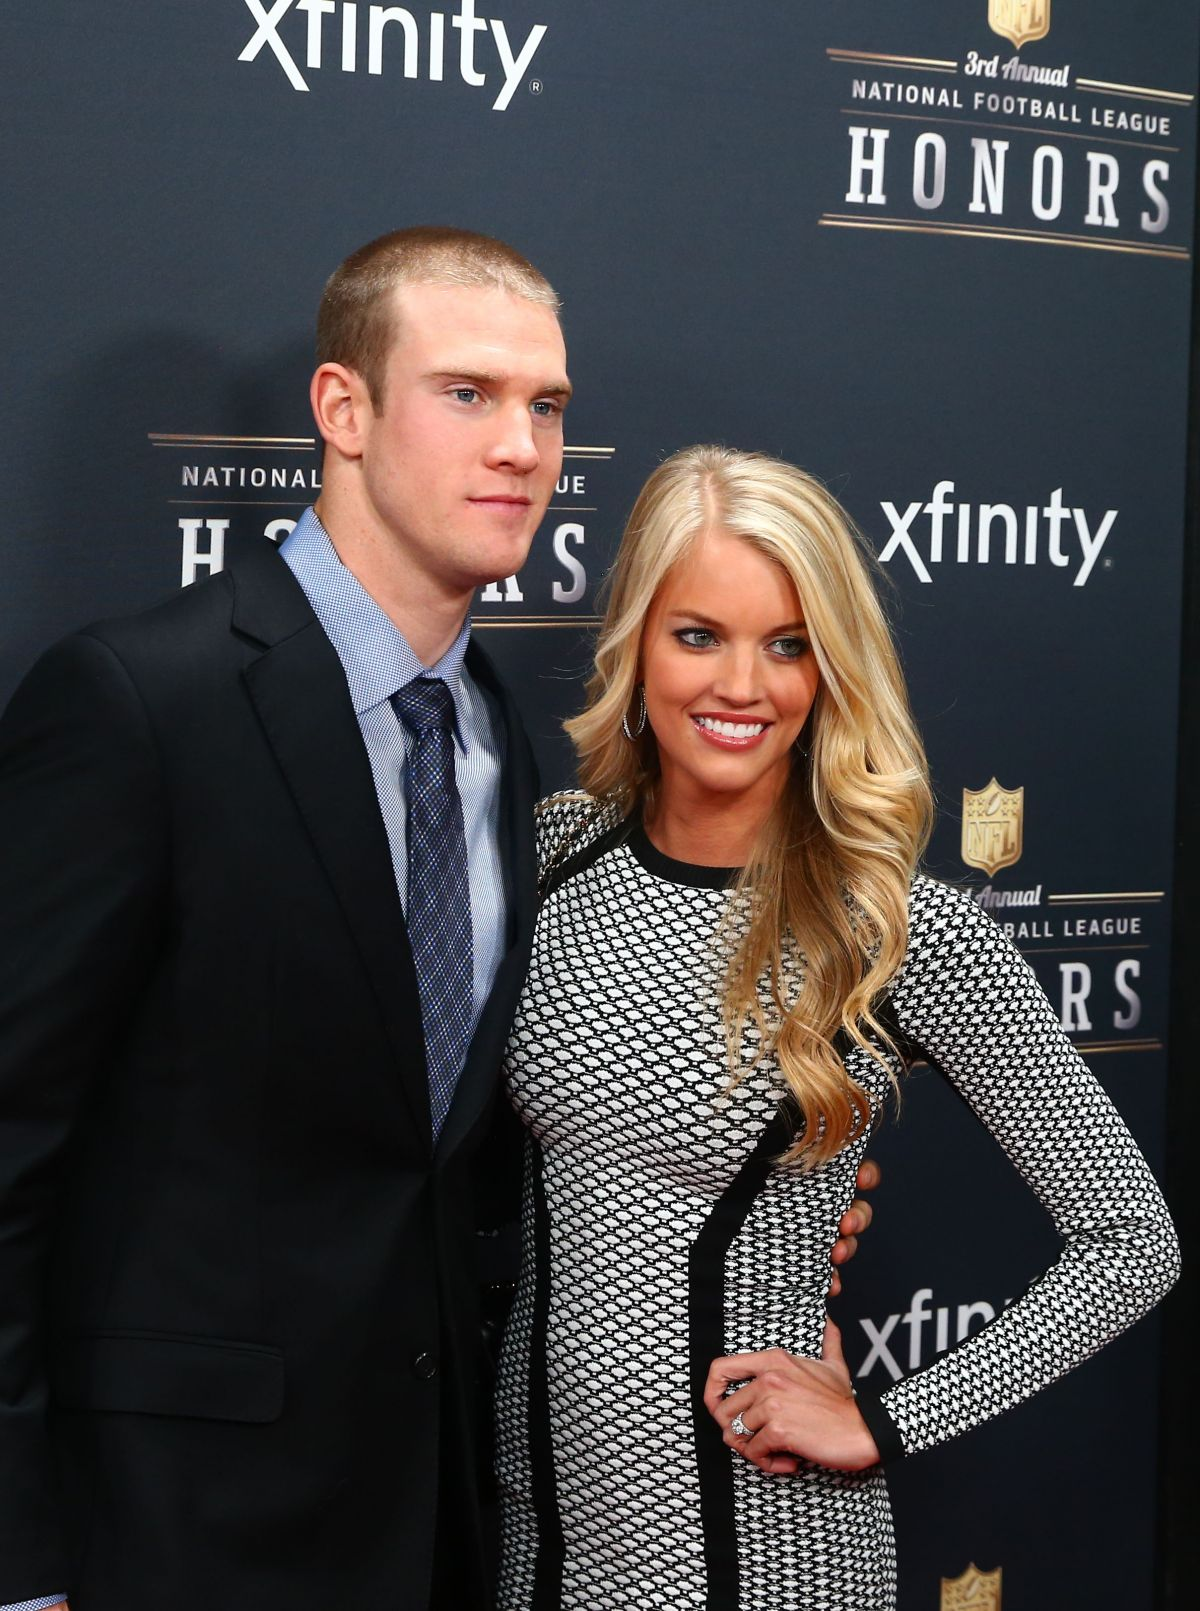 LAUREN TANNEHIL at 3rd Annual NFL Honors in New York